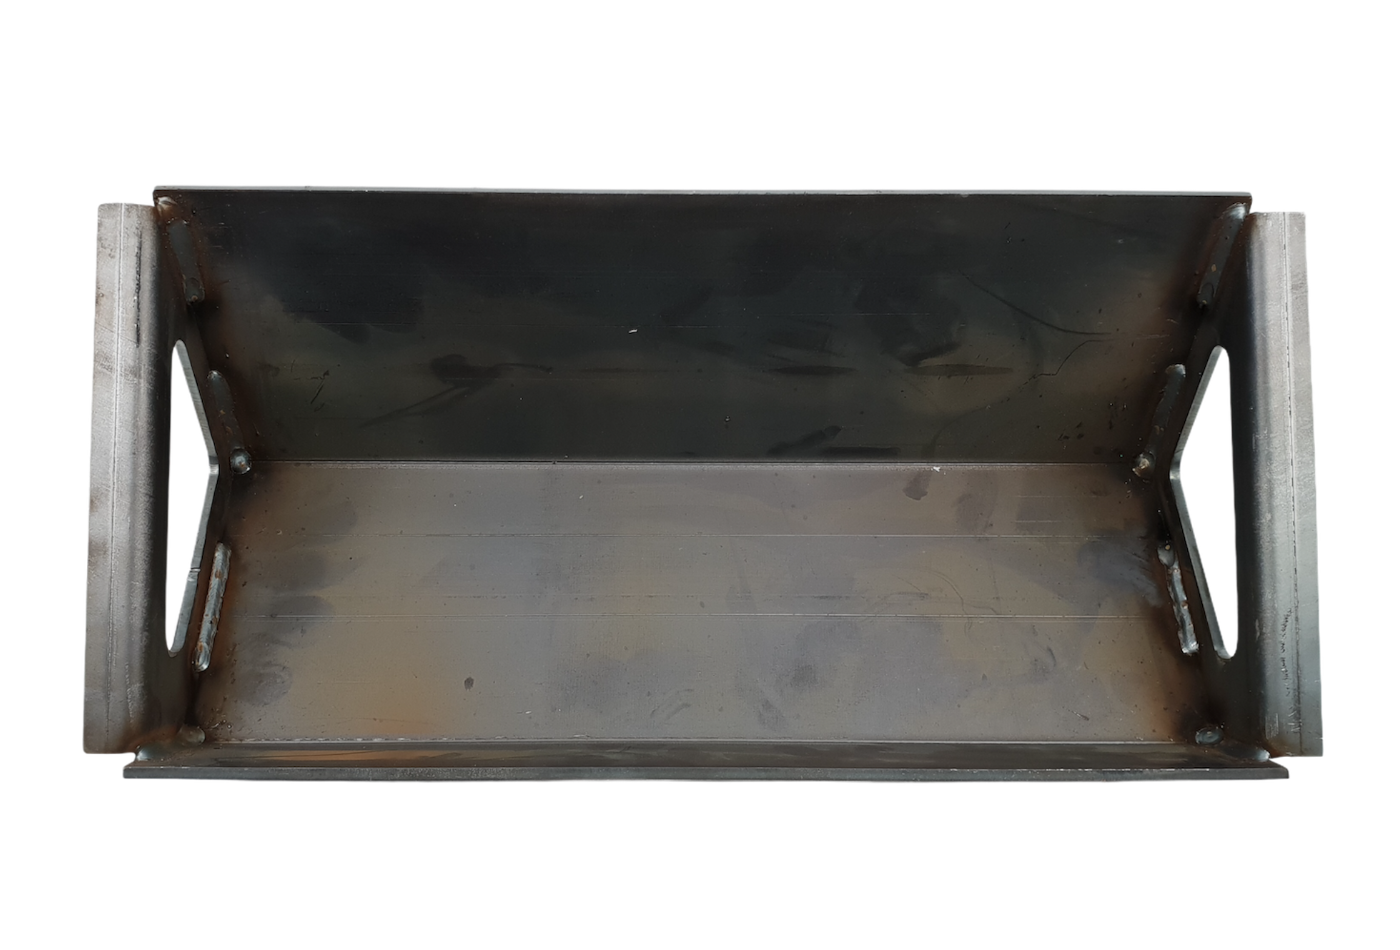 A recouping baffle plate suitable for an Hunter Herald 8 CEVII stove.